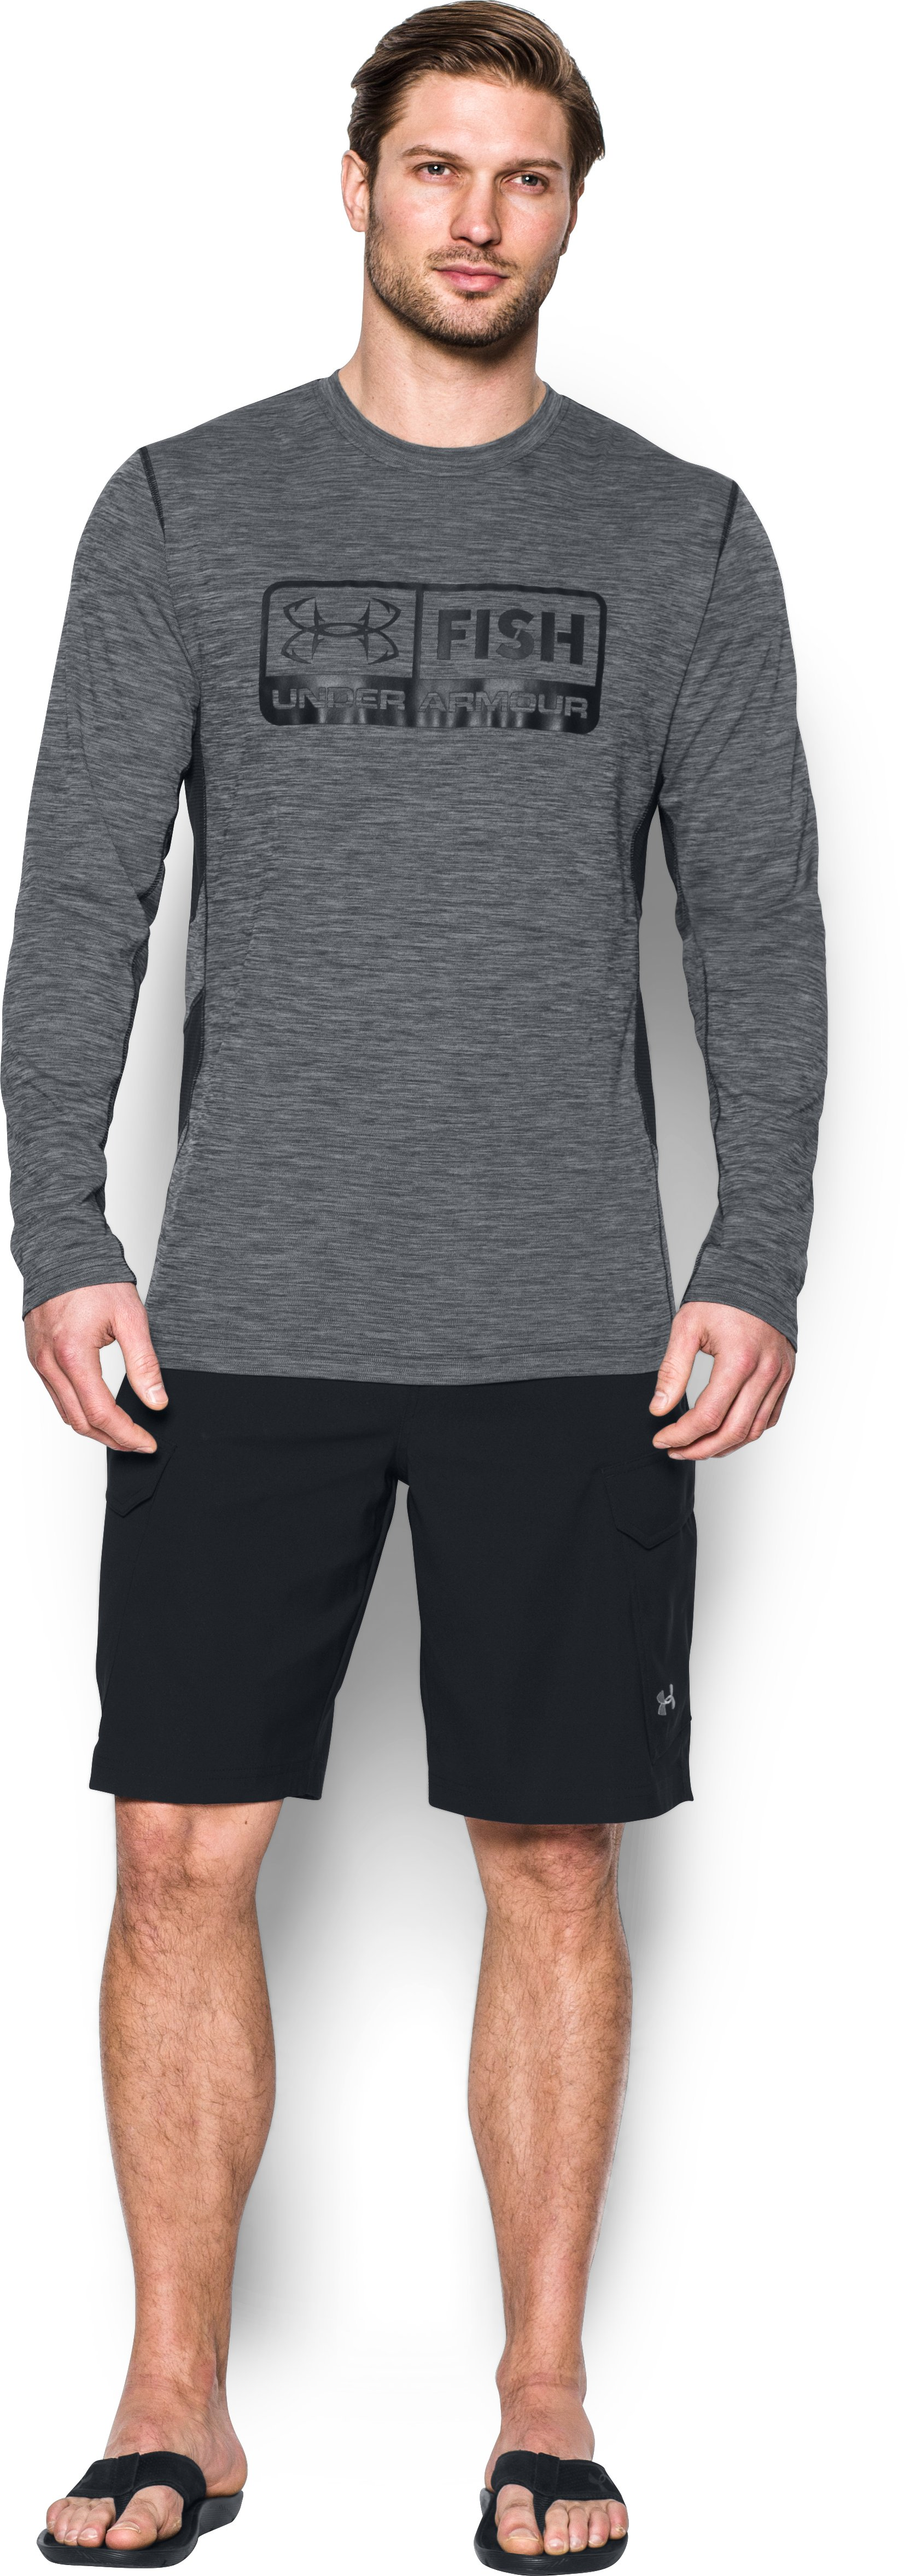 UA Fish Hunter Long Sleeve, Black